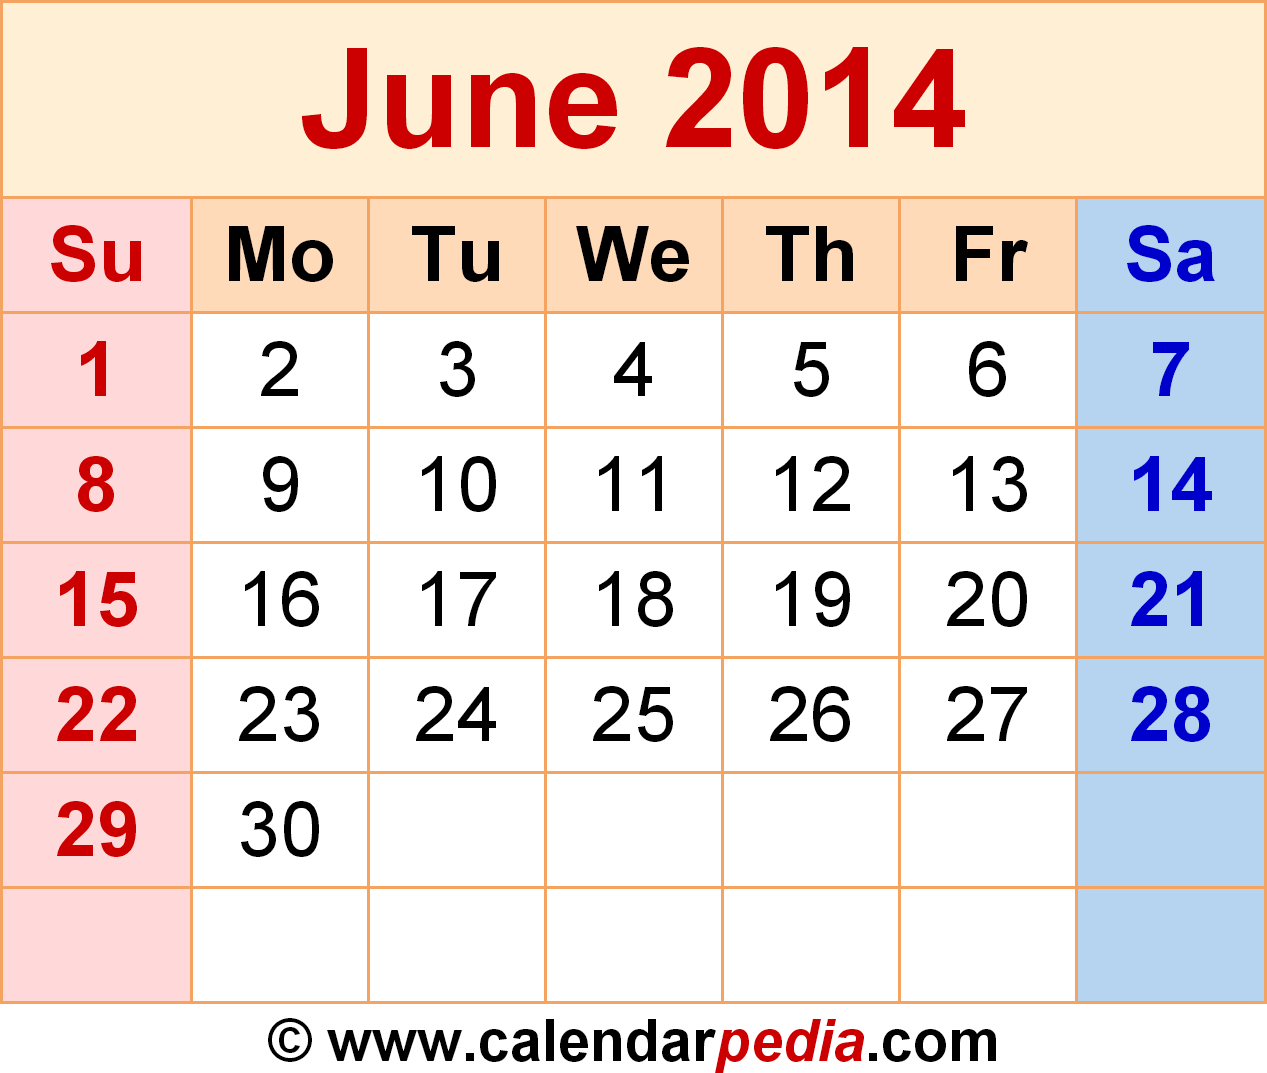 Month of june 2014 calendar calendarpedia recipes to cook april 2018 calendar printable template with holidays pdf usa uk april calendar 2018 april calendar march 2018 printable calendar word excel canada alramifo Image collections